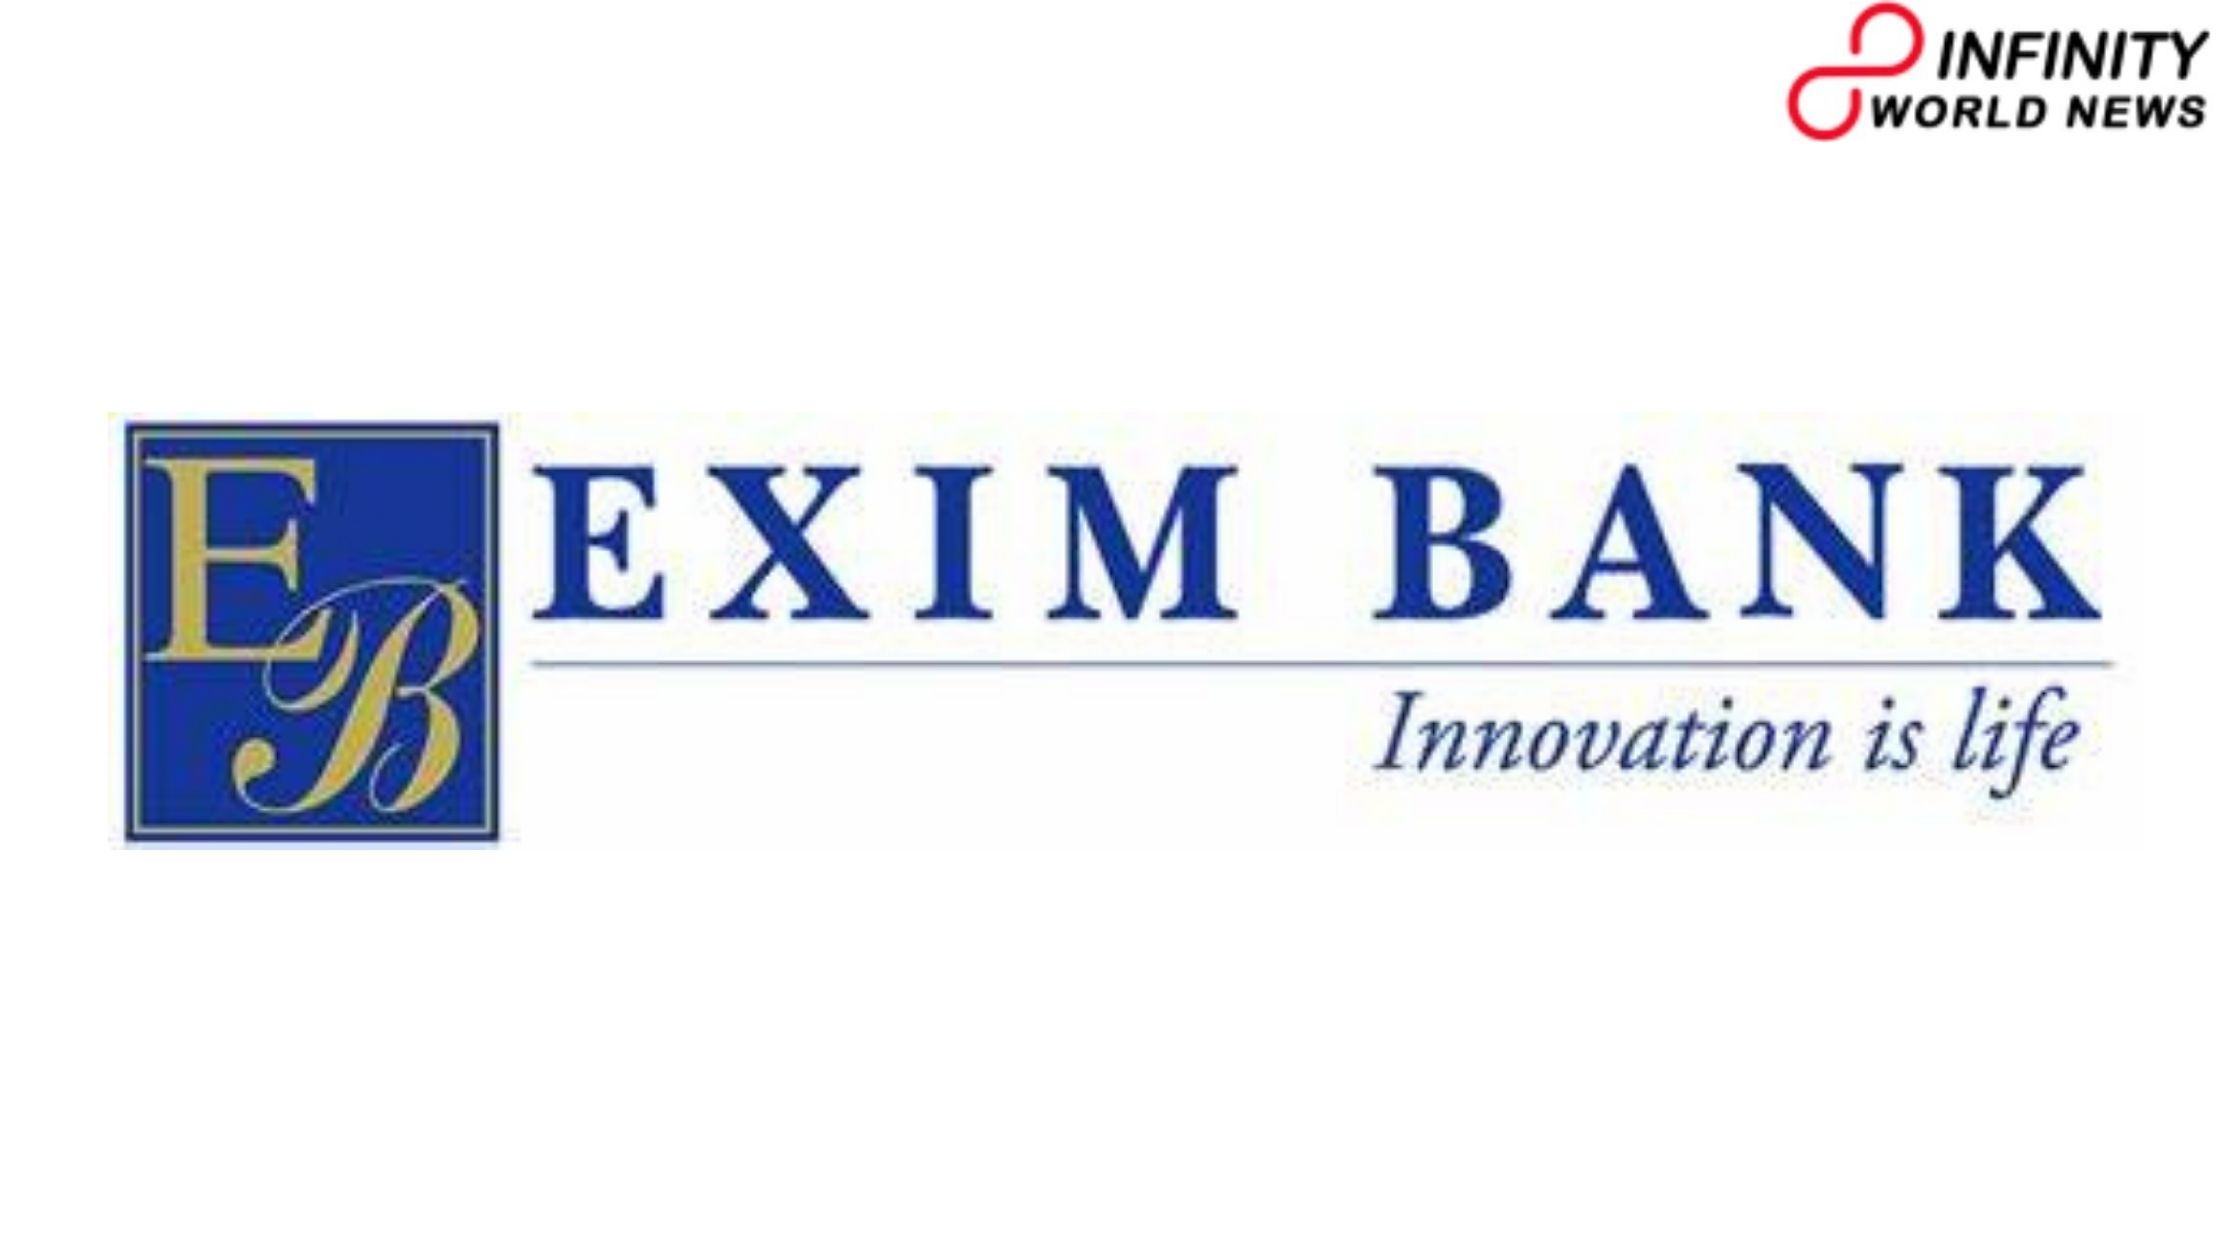 EXIM Bank Management Trainee Recruitment 2020: Check no. of posts, pay scale, also qualification